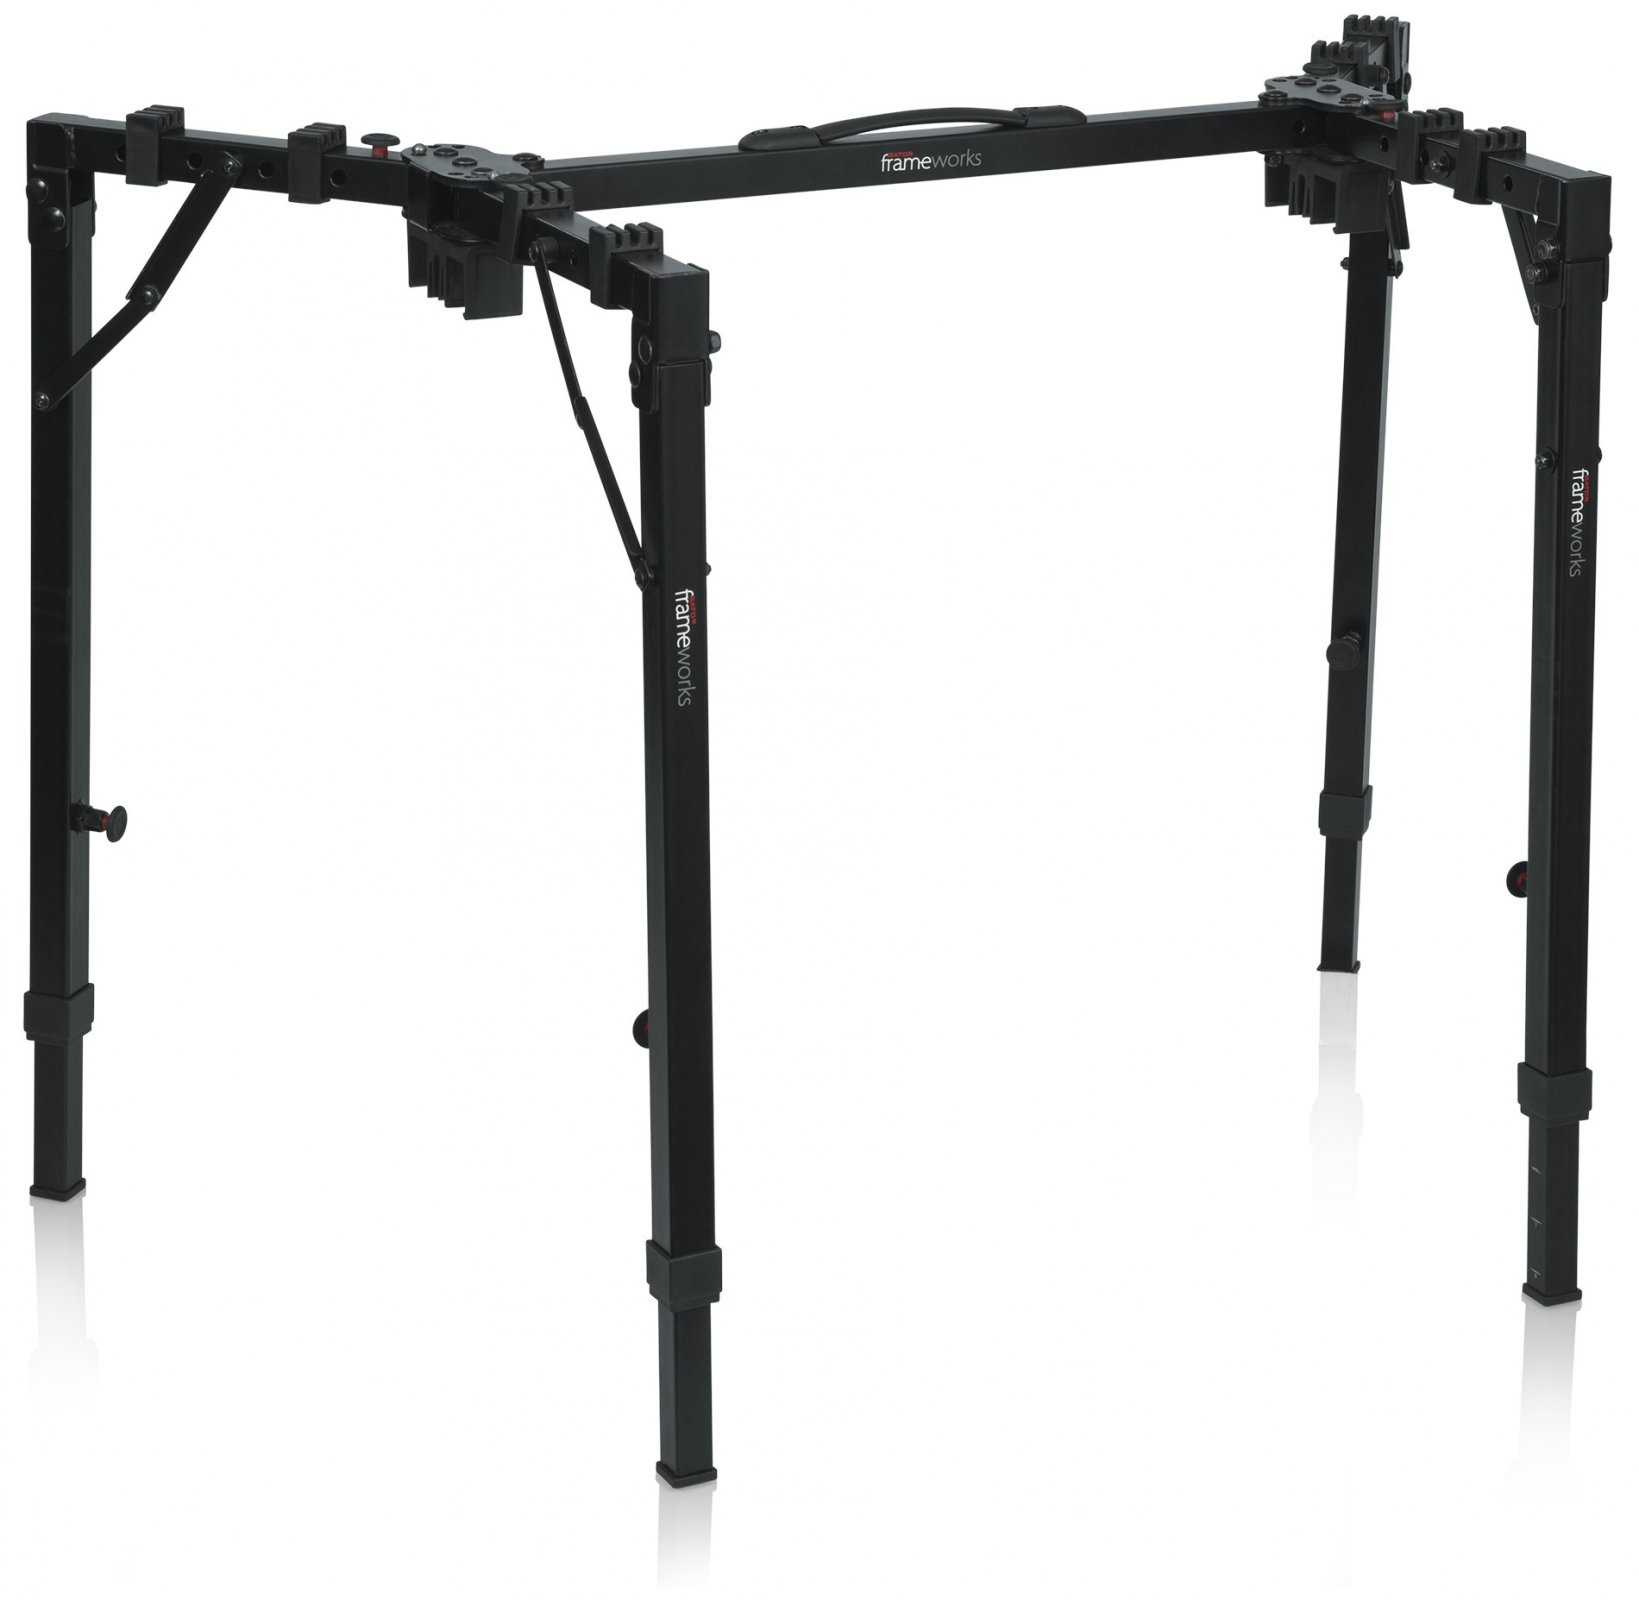 GATOR GFW-UTL-WS250 FRAMEWORKS ADJUSTABLE T-STAND FOLDING WORKSTATION WITH 250LB WEIGHT CAPACITY